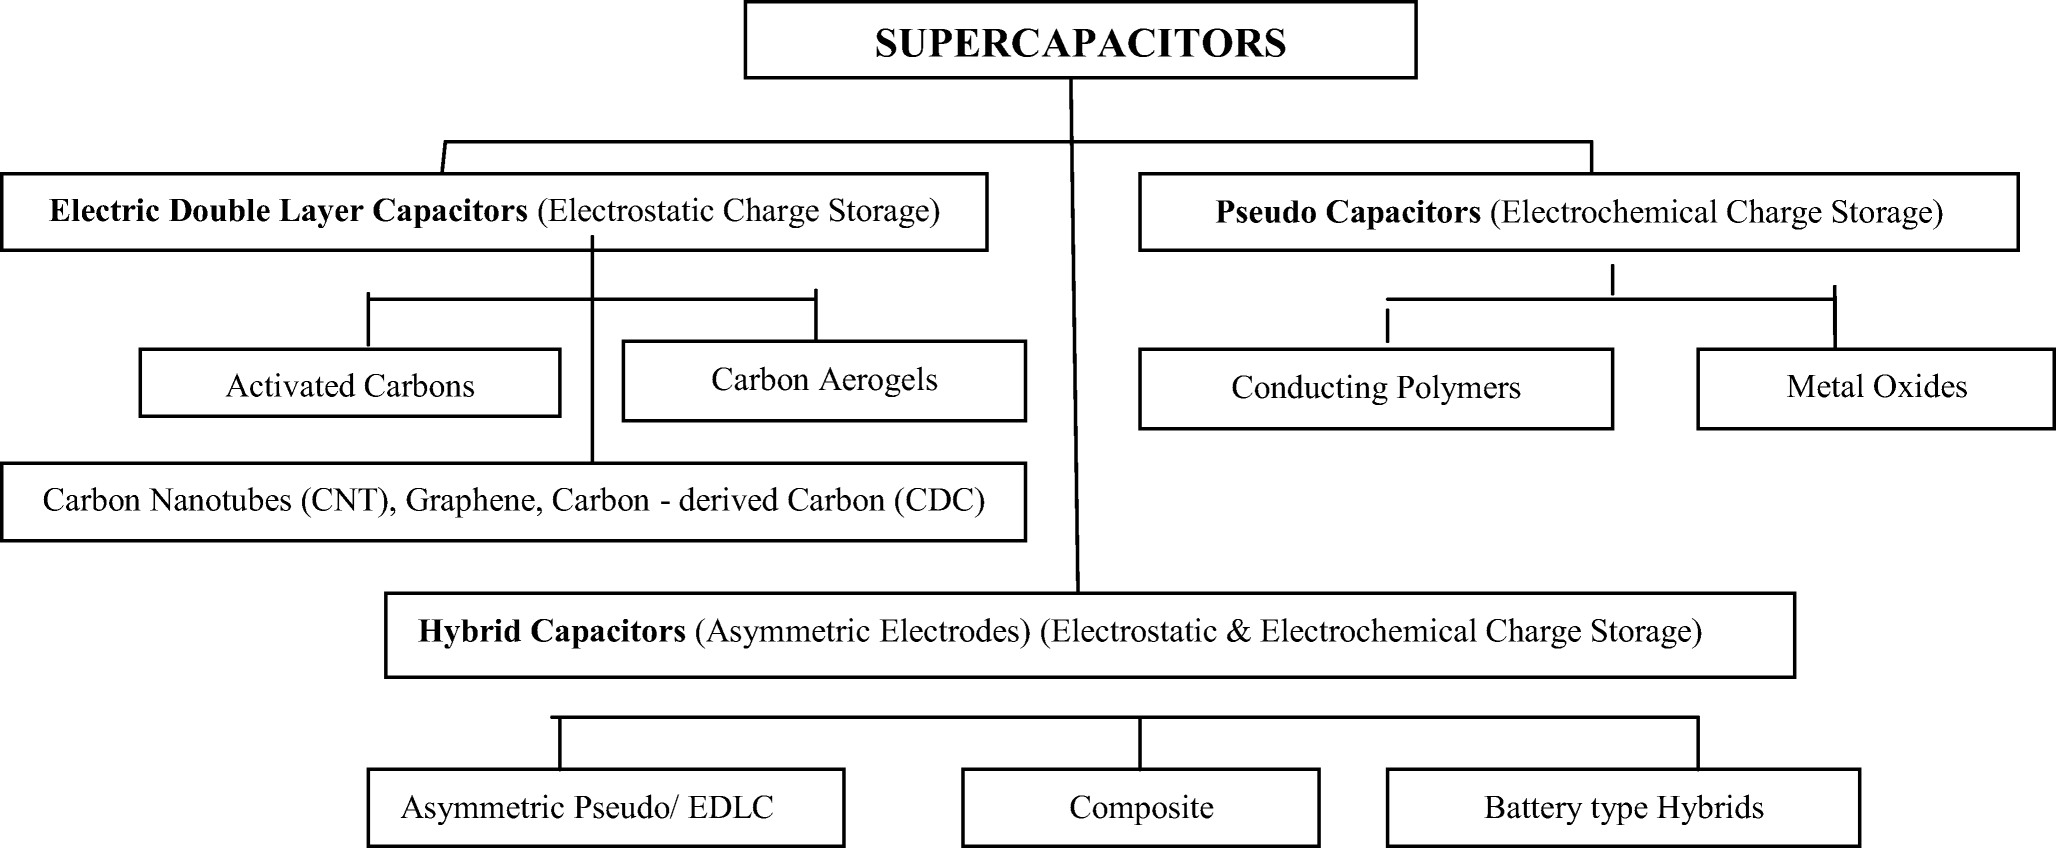 Superb Review Of Carbon Based Electrode Materials For Supercapacitor Energy Wiring Cloud Overrenstrafr09Org